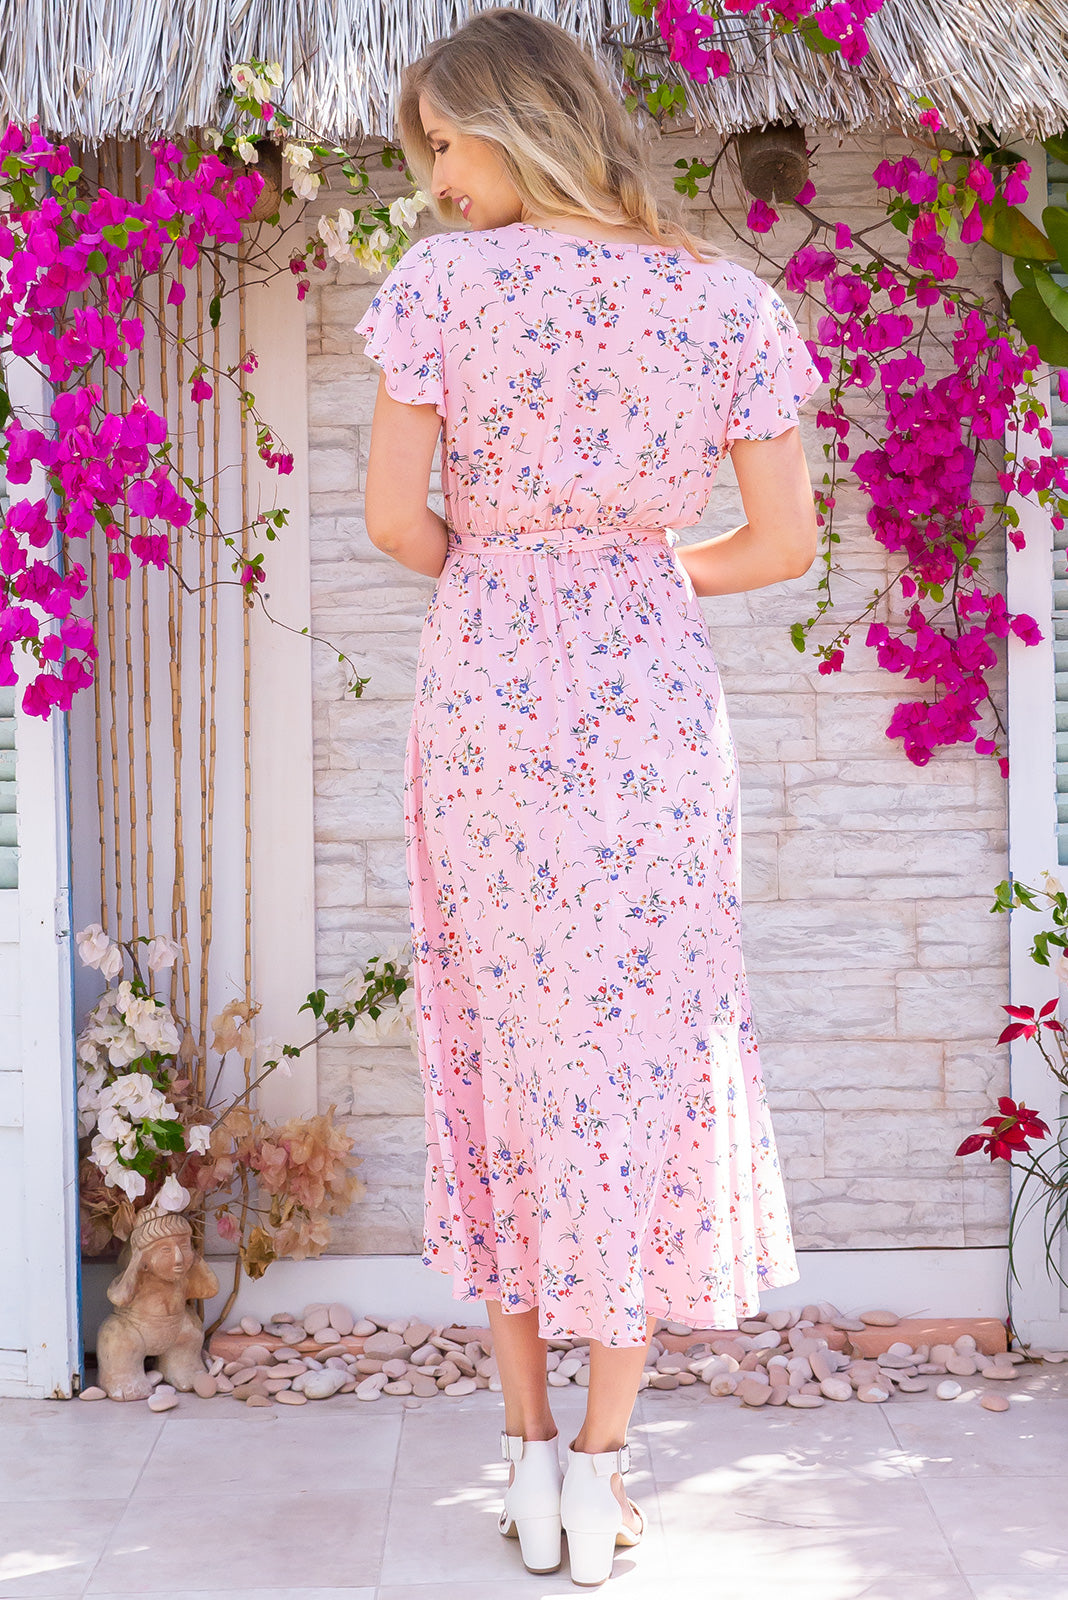 Phinda Pink Floralie Maxi Dress in 100% rayon feminine and flowy frock. Vintage and spring inspired, features waist ties and side pockets.